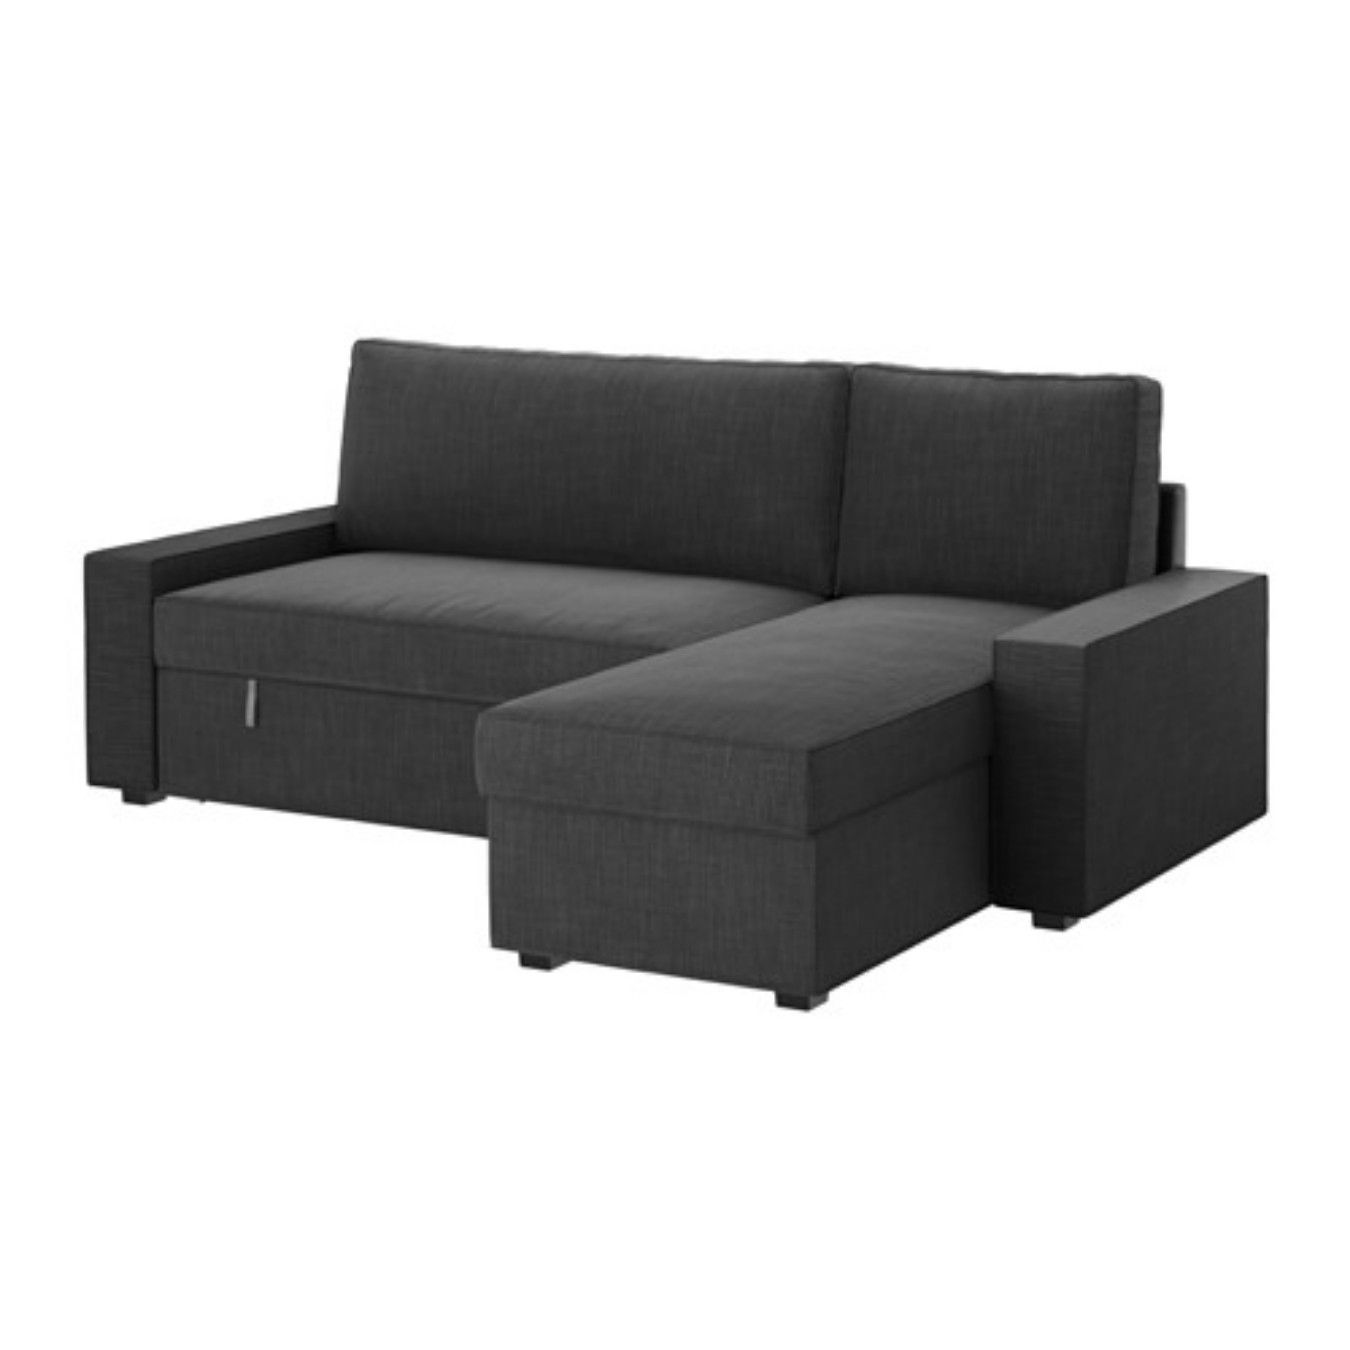 Vimle Sofa Ikea Dubai Lugnvik Sofa Bed With Chaise Lounge Ikea The Chaise Can Be Placed